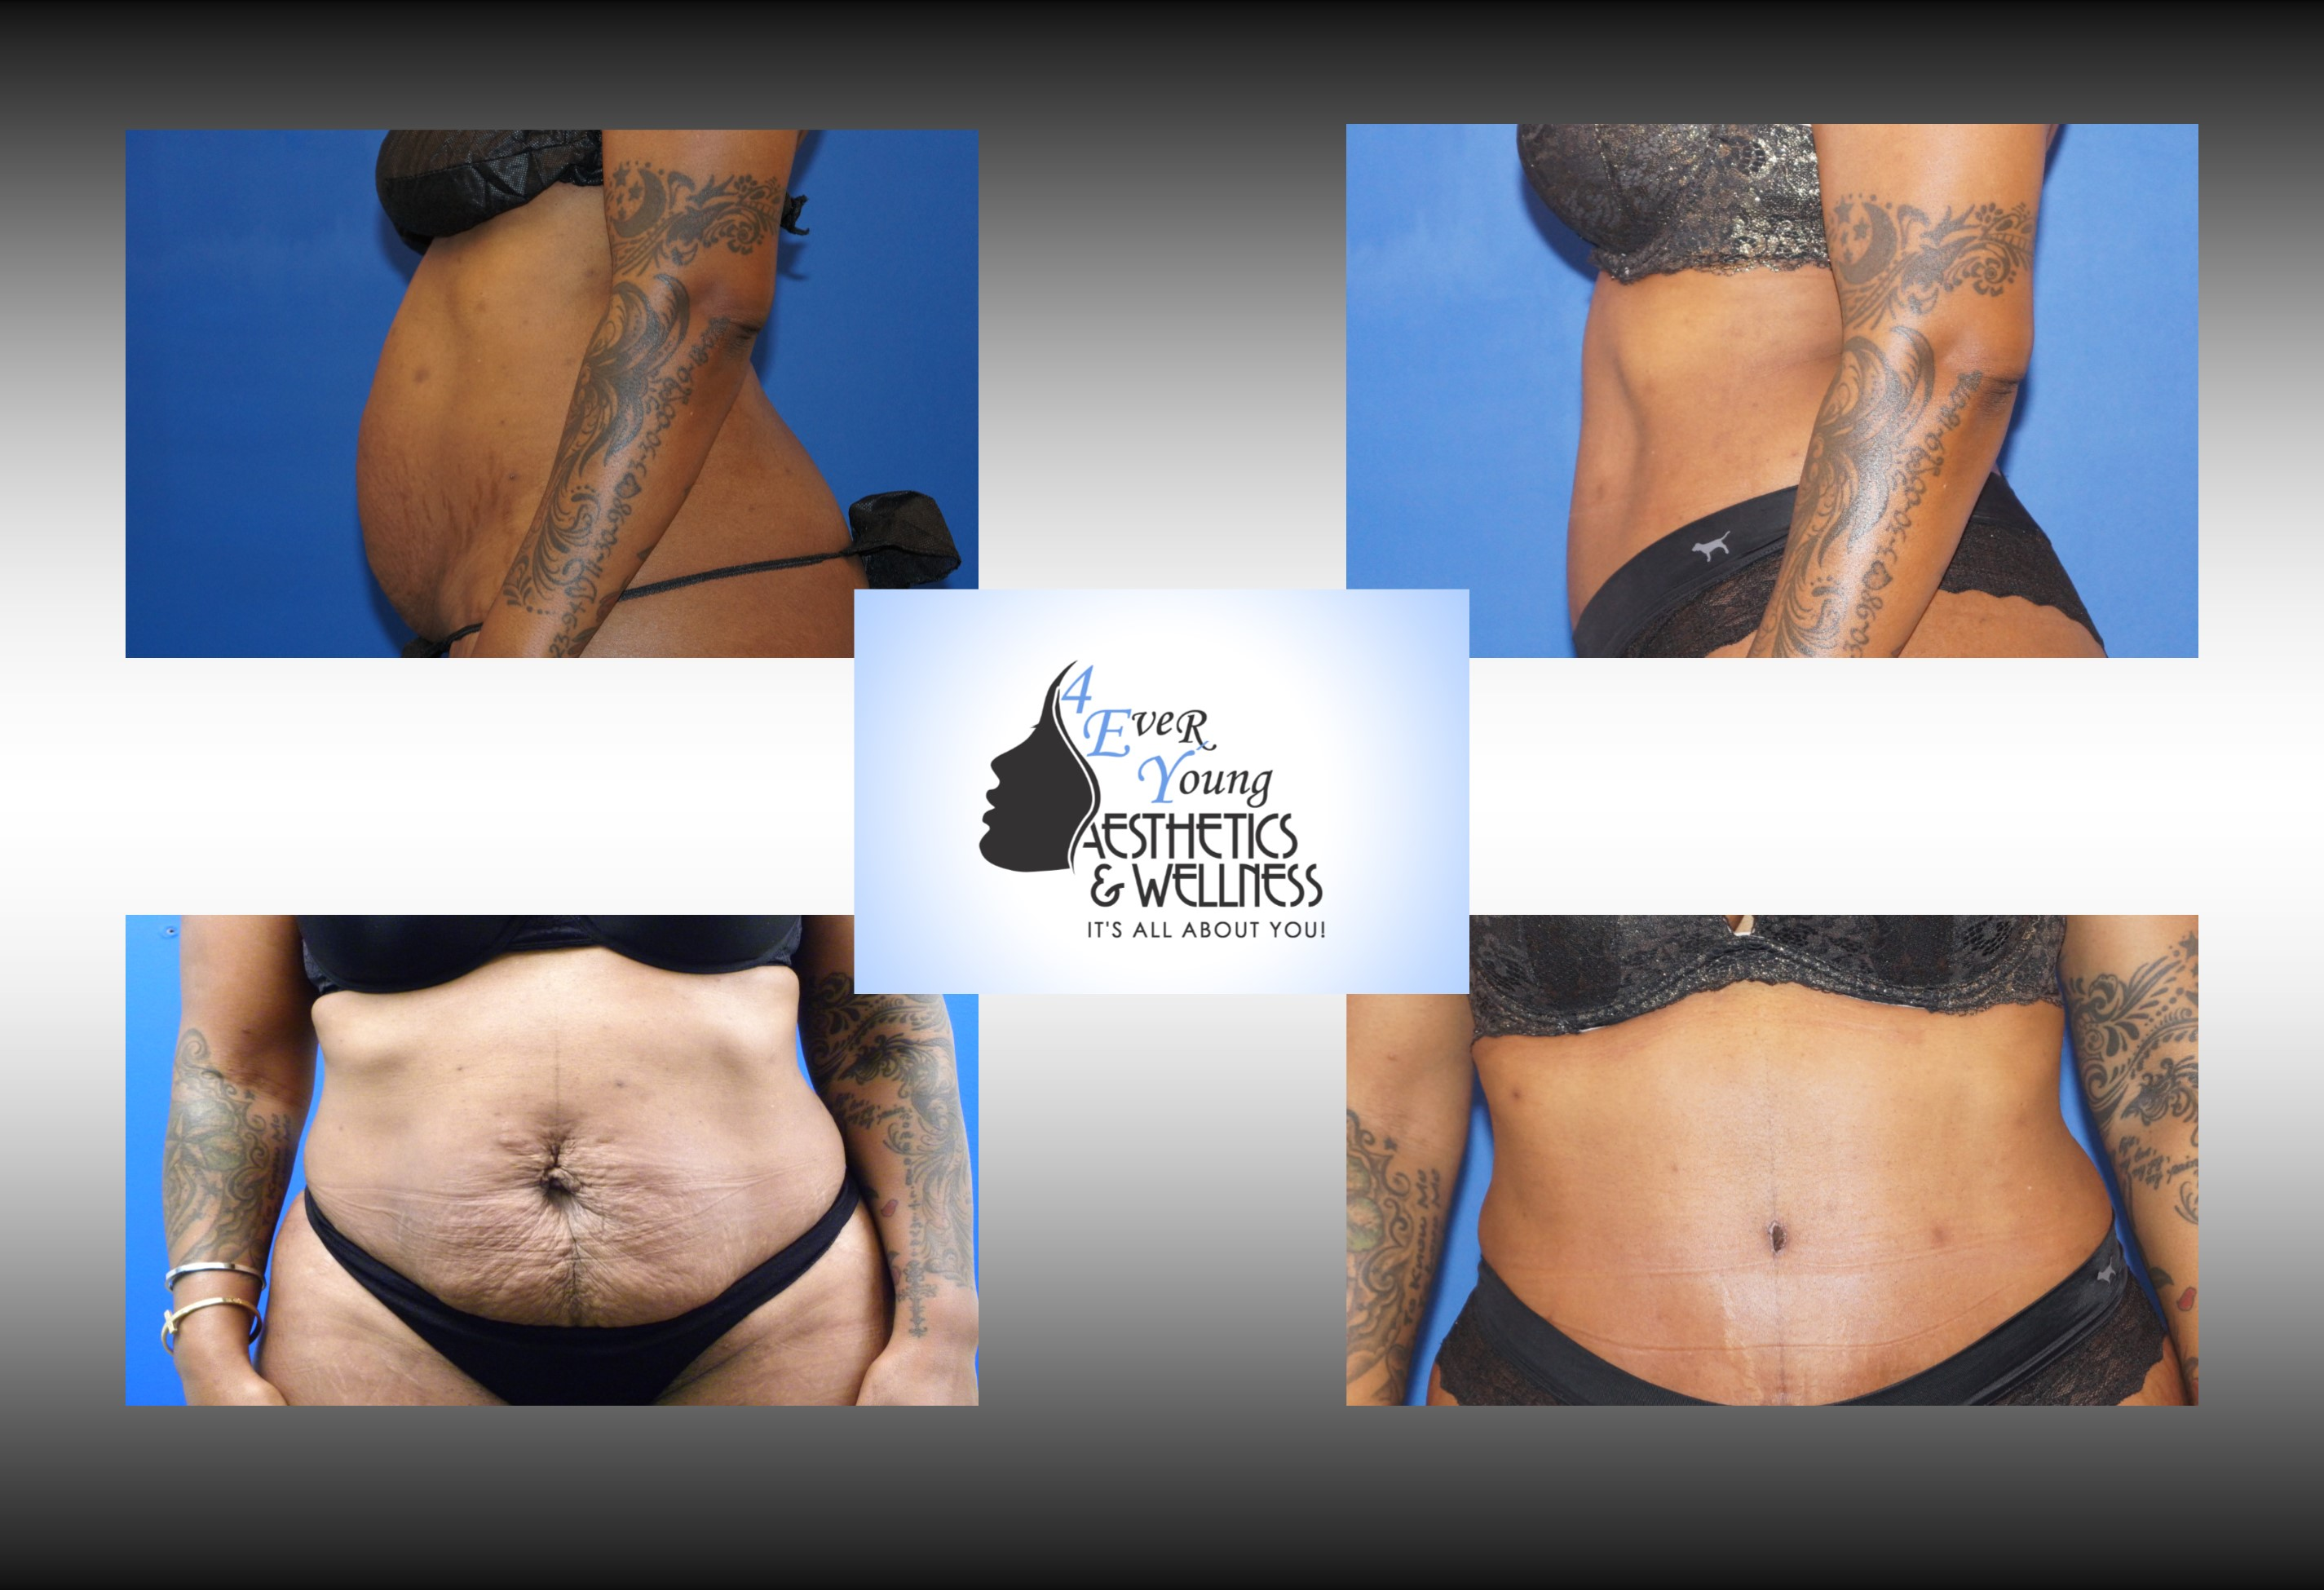 tummy tuck cost, Tummy Tuck, also known as abdominoplasty, lipoabdominoplasty, liposuction tummy tuck, is a procedure to that corrects a rectus diasthasis and removes excess or poor quality skin from the abdomen. We combine our tummy tuck with liposuction in order to contour the body resulting in a flat stomach with scars that are placed low in the bikini line. Our liposuction is accomplished by either traditional tumescent liposuction, laser liposuction (Smartlipo), vaser liposuction with the use of a power assisted liposuction handle to remove fat more thoroughly and rapidly. We use abdominal liposuction, flank liposuction, back liposuction, arm liposuction, thigh liposuction and ankle liposuction to remove unsightly fat from problem areas with our tumescent liposuction procedures with or without sedation. If you desire we use autologous fat transfer (fat grafting) to use the fat obtained as the most natural dermal filler unlike synthetic fillers (Restylane, Juvederm, Sculptra, Radiesse, Belotero, Perlane) to improve fine lines and wrinkles of the face, hand rejuvenation with fat, fat transfer to breast, Brazilian Butt Lift (Butt Augmentation), liposculpture, lip augmentation with fat.  Fat transfer to the breast can be a great alternative to breast augmentation, saline implants, silicone implants, breast augmentation with mastopexy or just to improve volume in the upper pole of the breast. Our autologous fat transfer is second to none and we utilize Platelet-Rich Plasma (PRP) which helps stabilize the fat transfer faster by promoting blood vessels to grow into the fat grafting. Most people think that a Brazilian butt lift (BBL) is a plastic surgery procedure but instead it is a cosmetic surgery procedure strictly performed for enhancement of the buttock area to transform your butt into the big Brazilian butt and replicate the popular Brazilian ass that Brazilian butt women have been getting Brazilian butt lifts to have for years.  As part of our mommy makeover pa